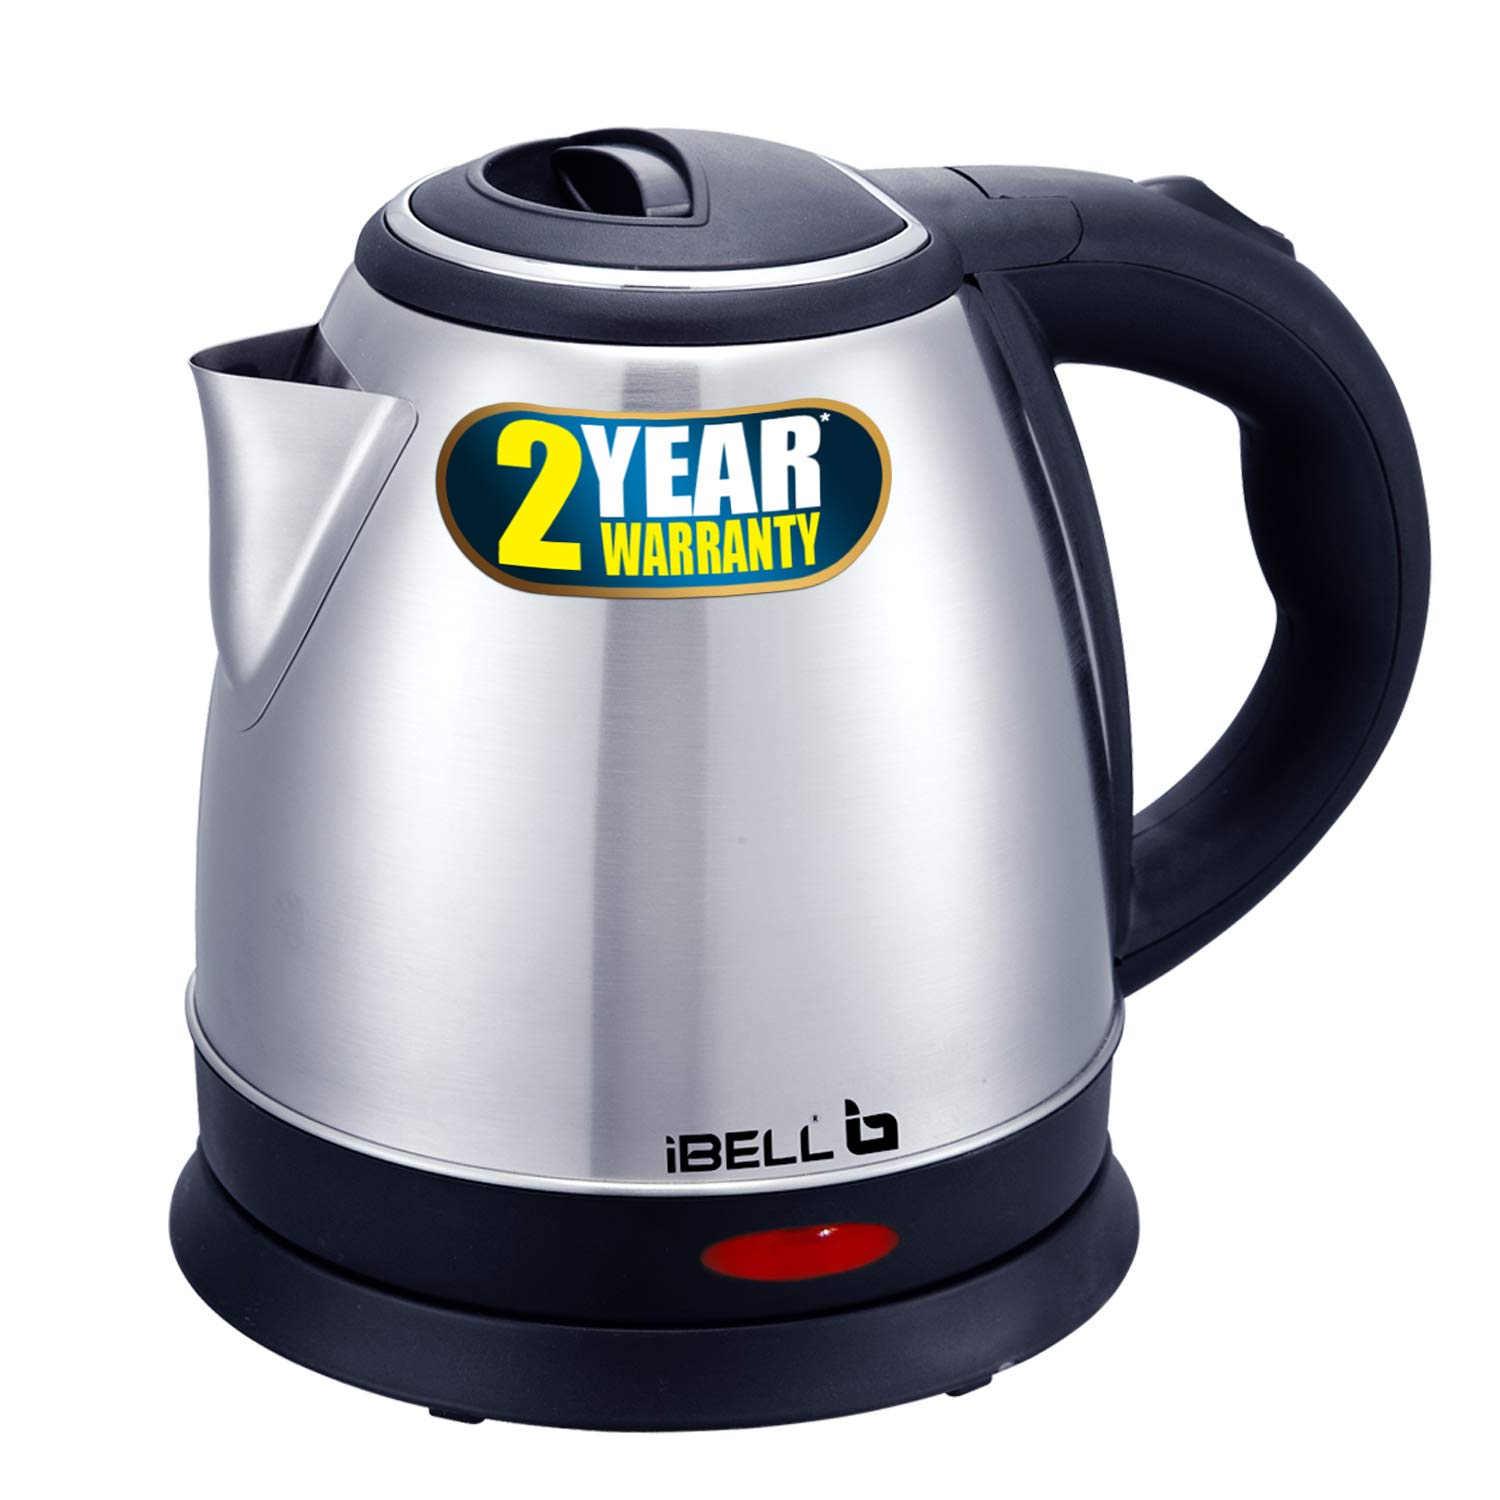 iBell electric kettle